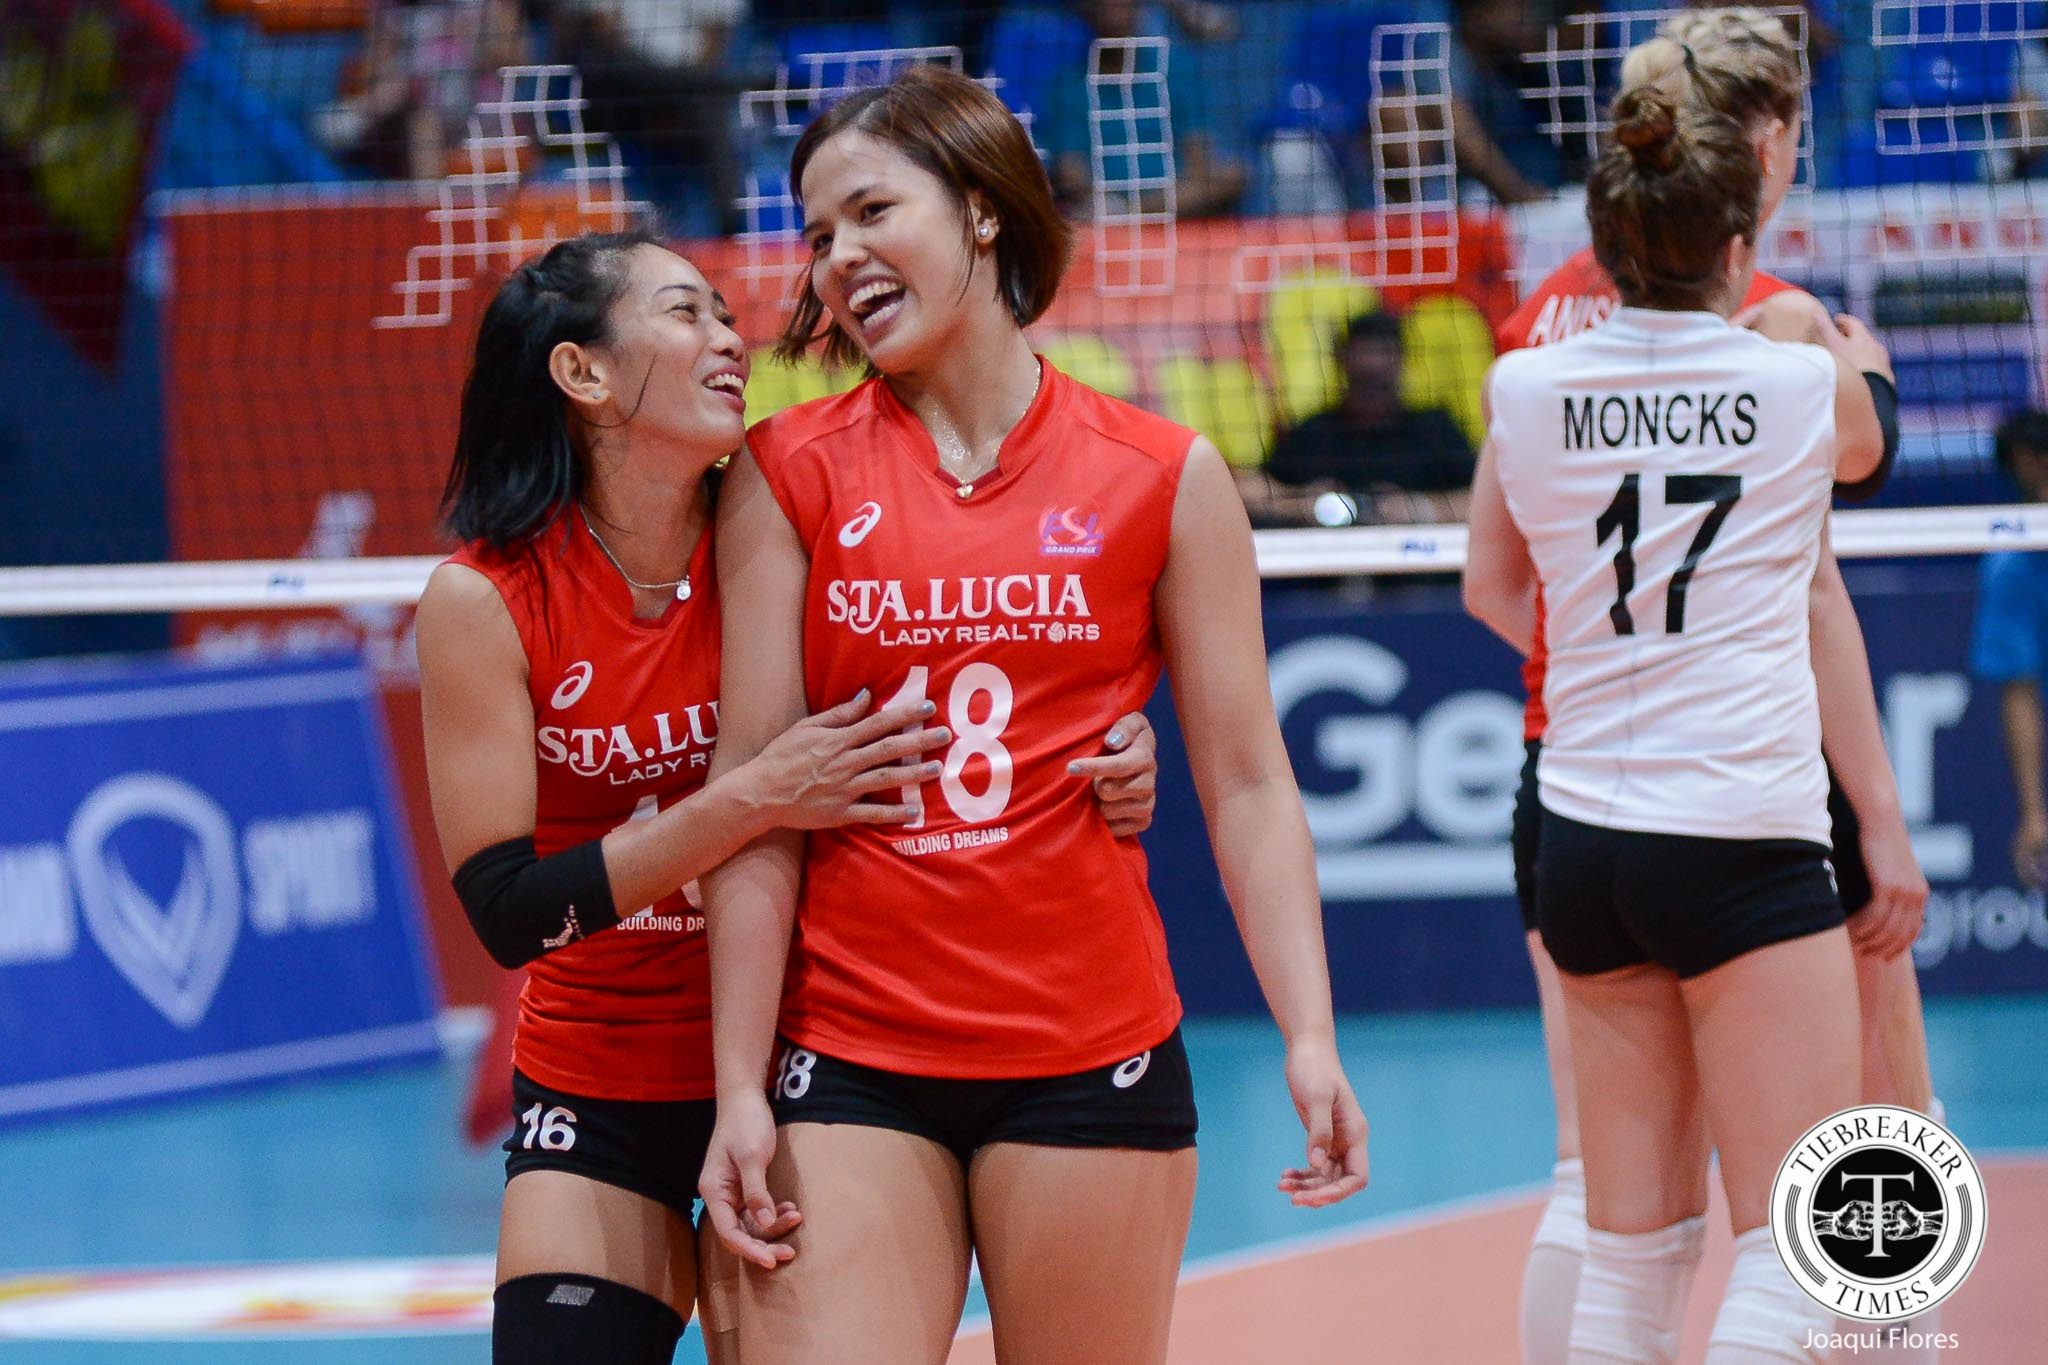 Philippine Sports News - Tiebreaker Times Pam Lastimosa stays with Sta. Lucia News PSL Volleyball  Sta. Lucia Lady Realtors Pam Lastimosa Chooks-to-Go 2018 PSL Season 2018 PSL Grand Prix